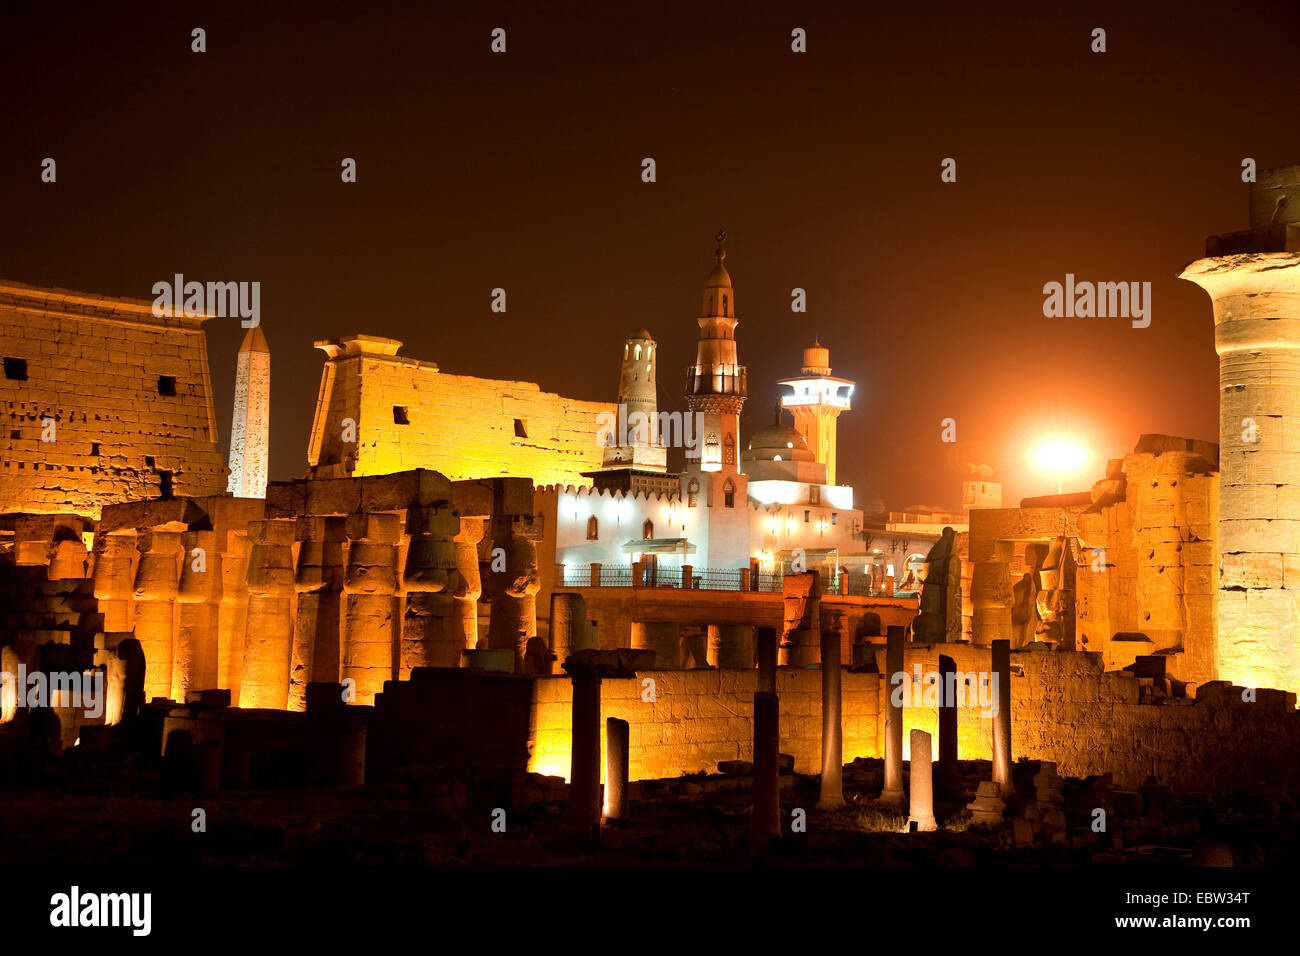 the Luxor Temple with the mosque of the city saint AbuÆl-Haggag in the first inner yard in nightly illumination, Stock Photo